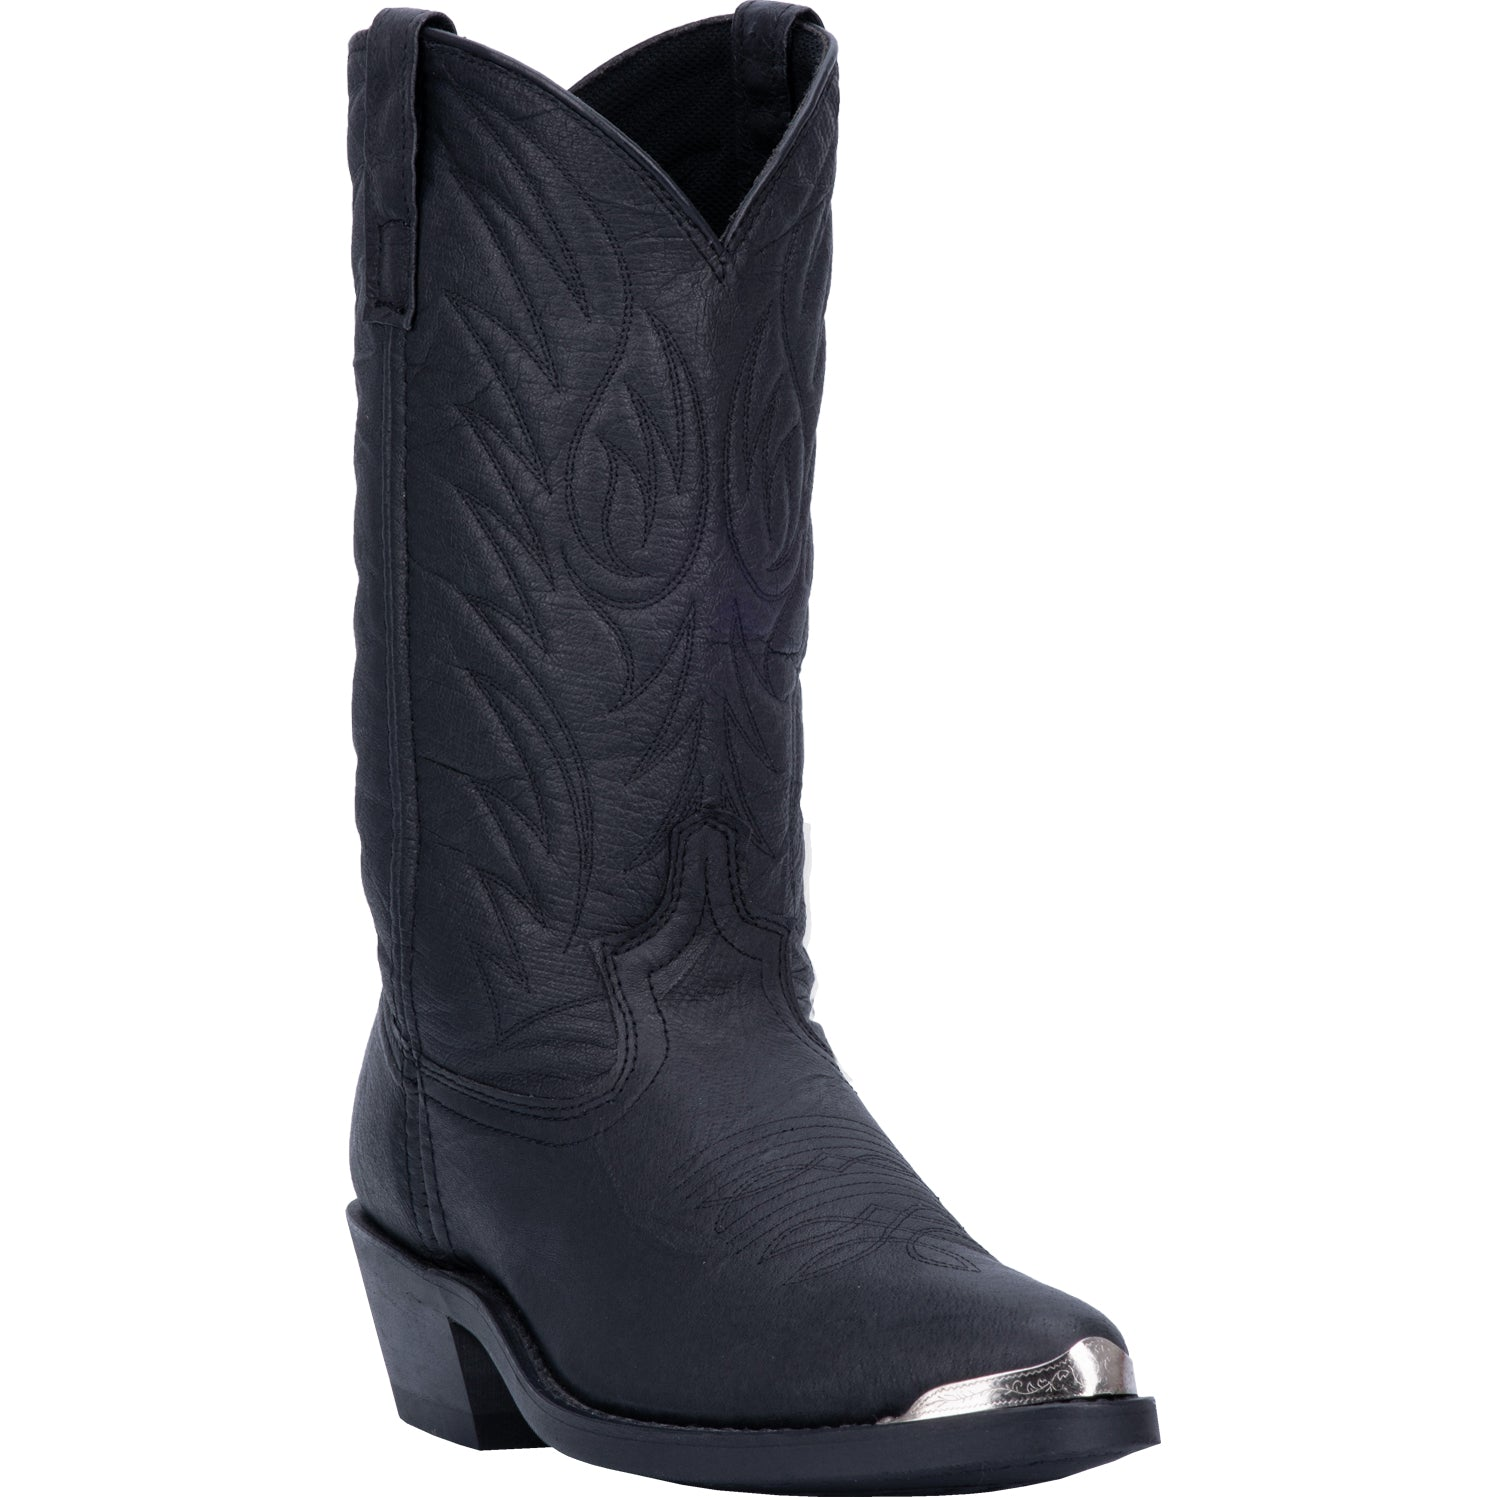 EAST BOUND LEATHER BOOT 4252396650538